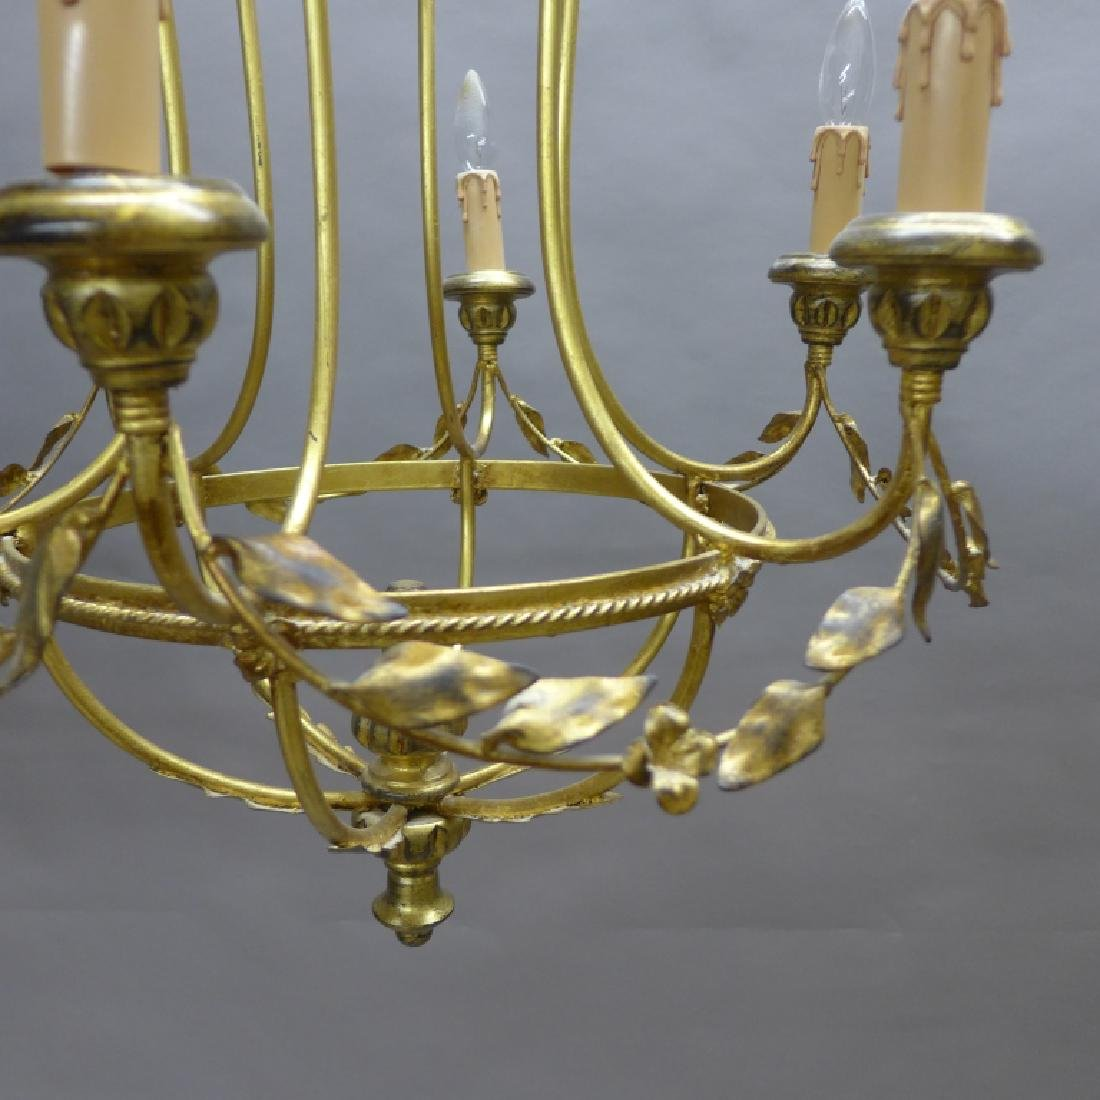 Neoclassical Style Chandelier - 5